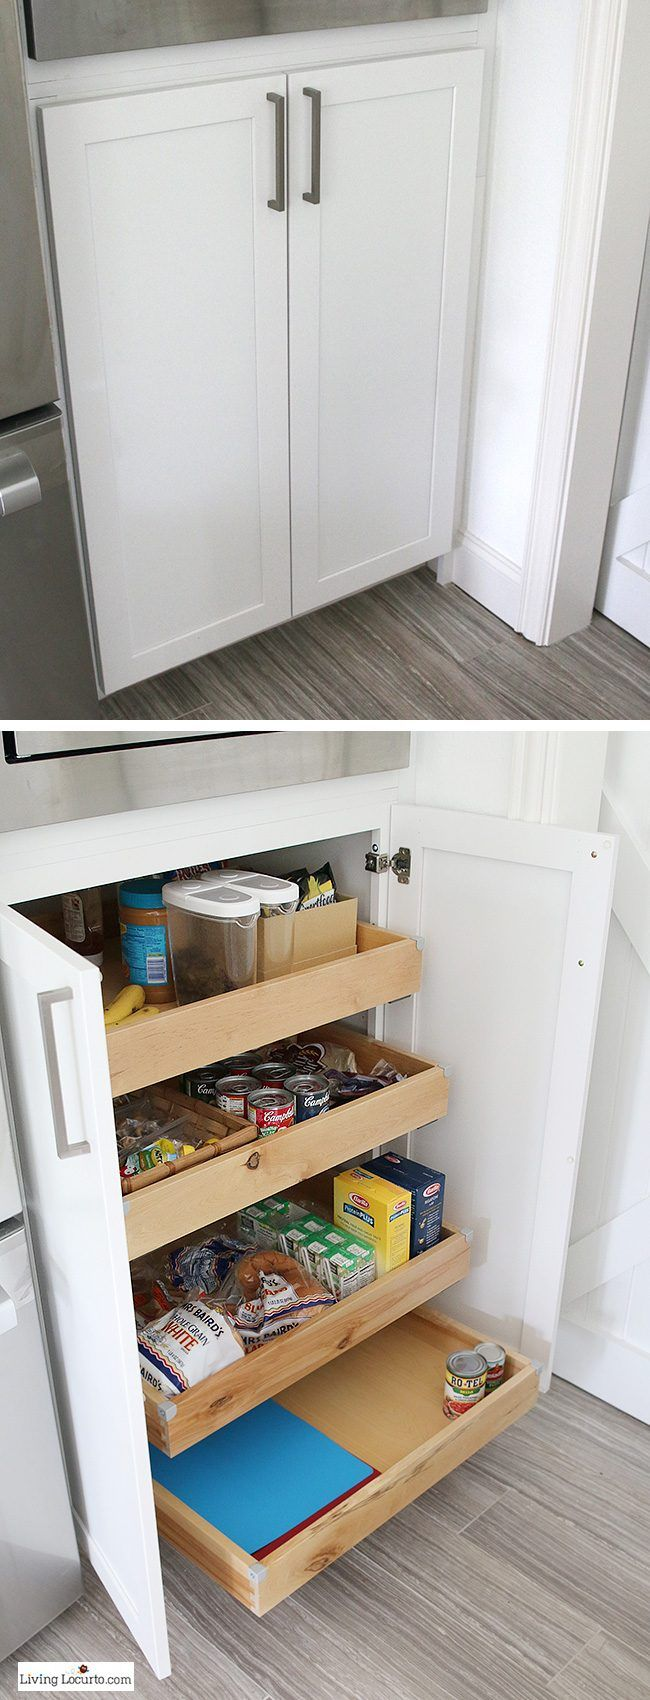 the most amazing kitchen cabinet organization ideas on clever ideas for diy kitchen cabinet organization tips for organizers id=66255